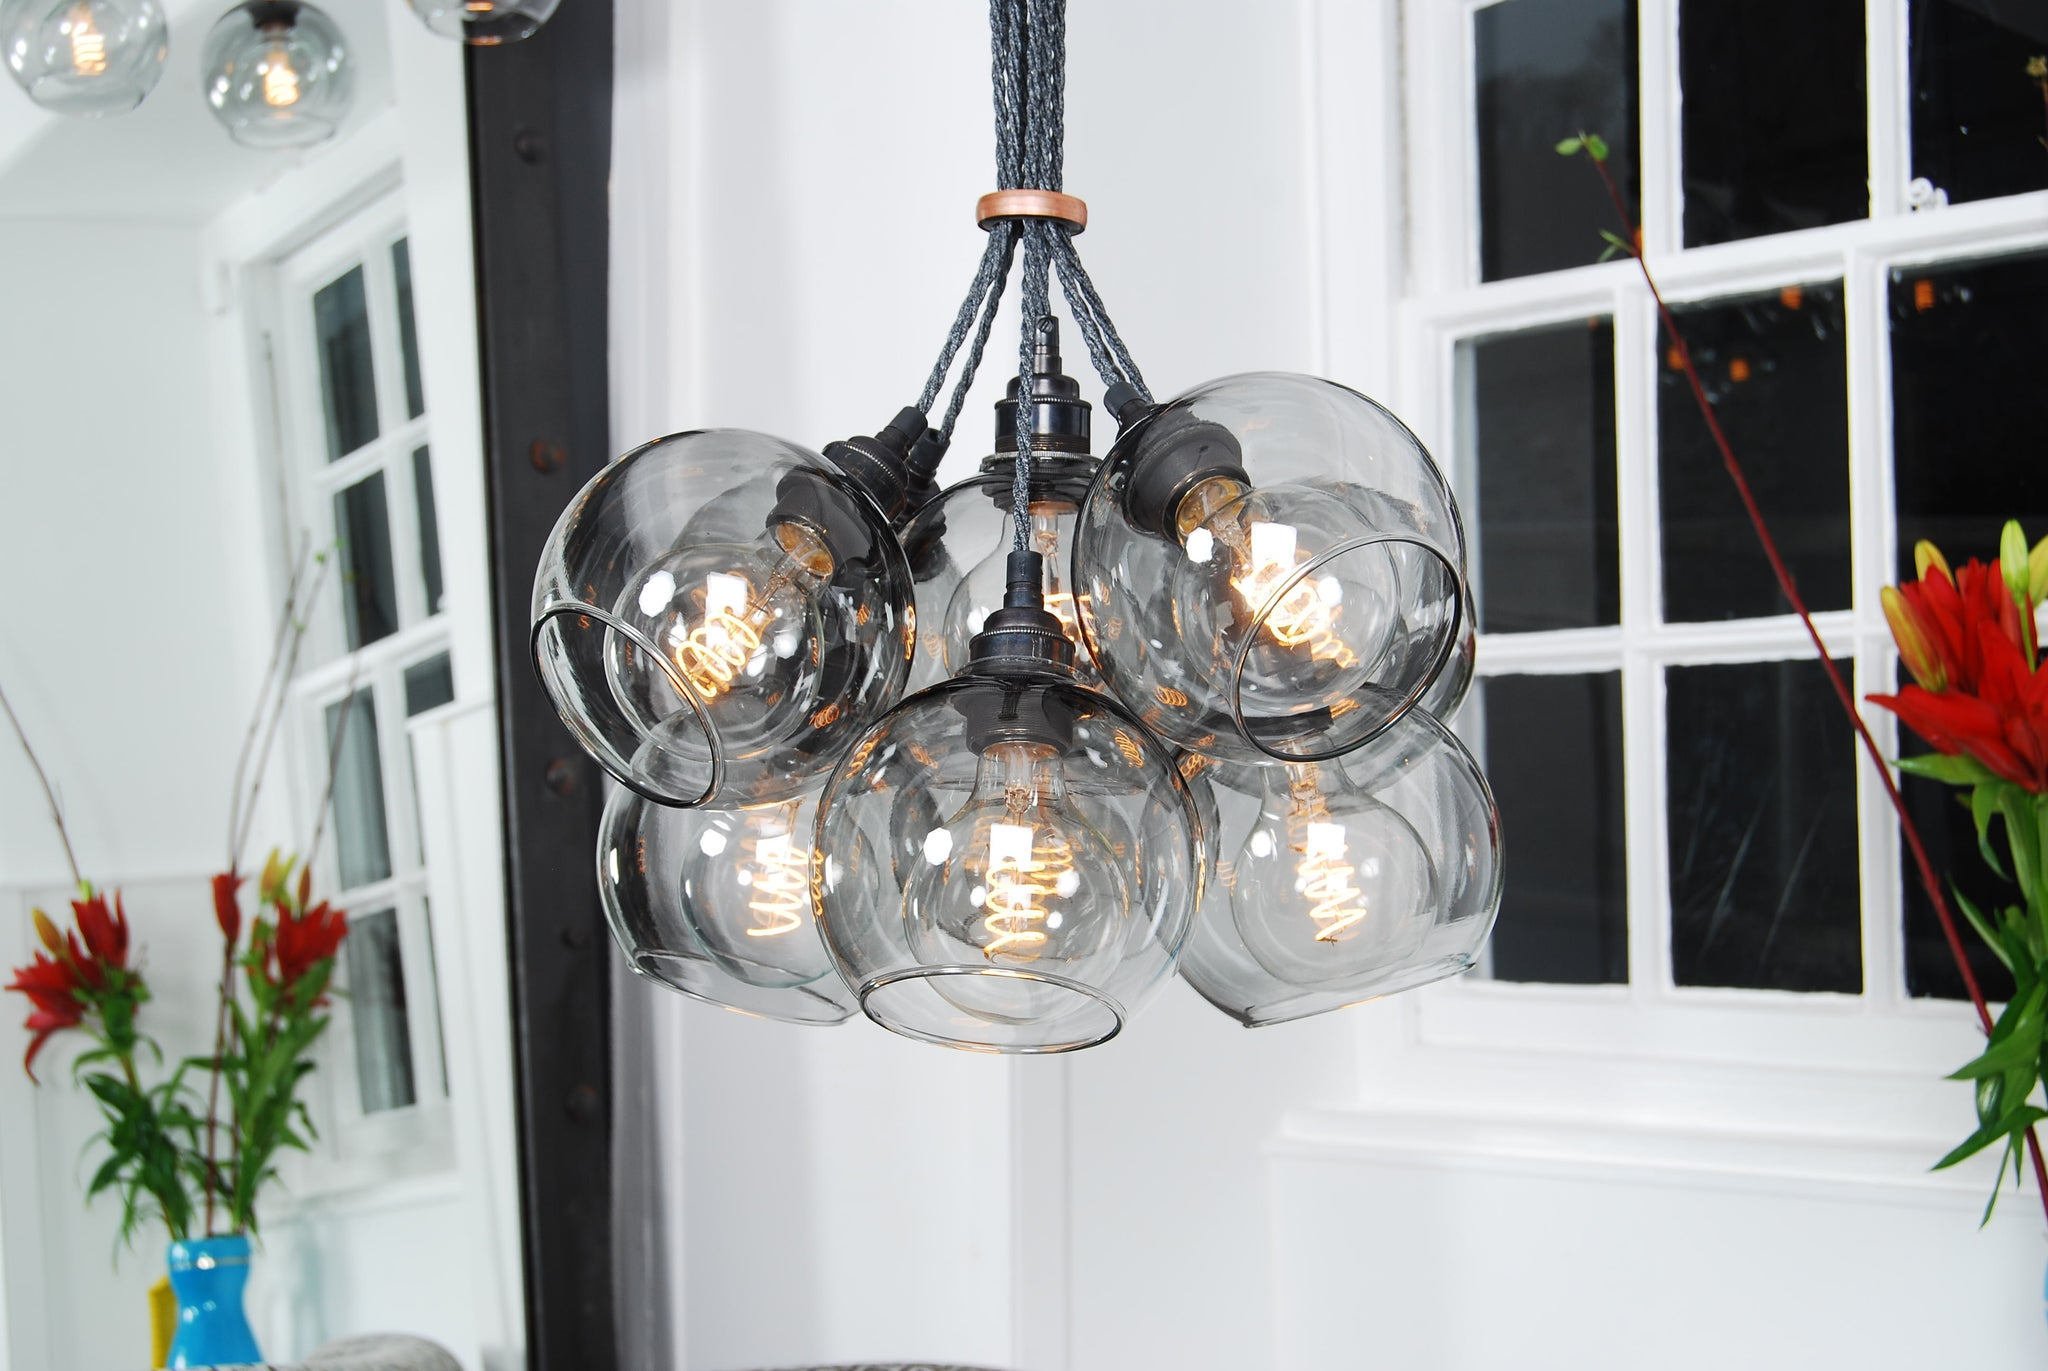 NEO Onyx Glass Chandelier